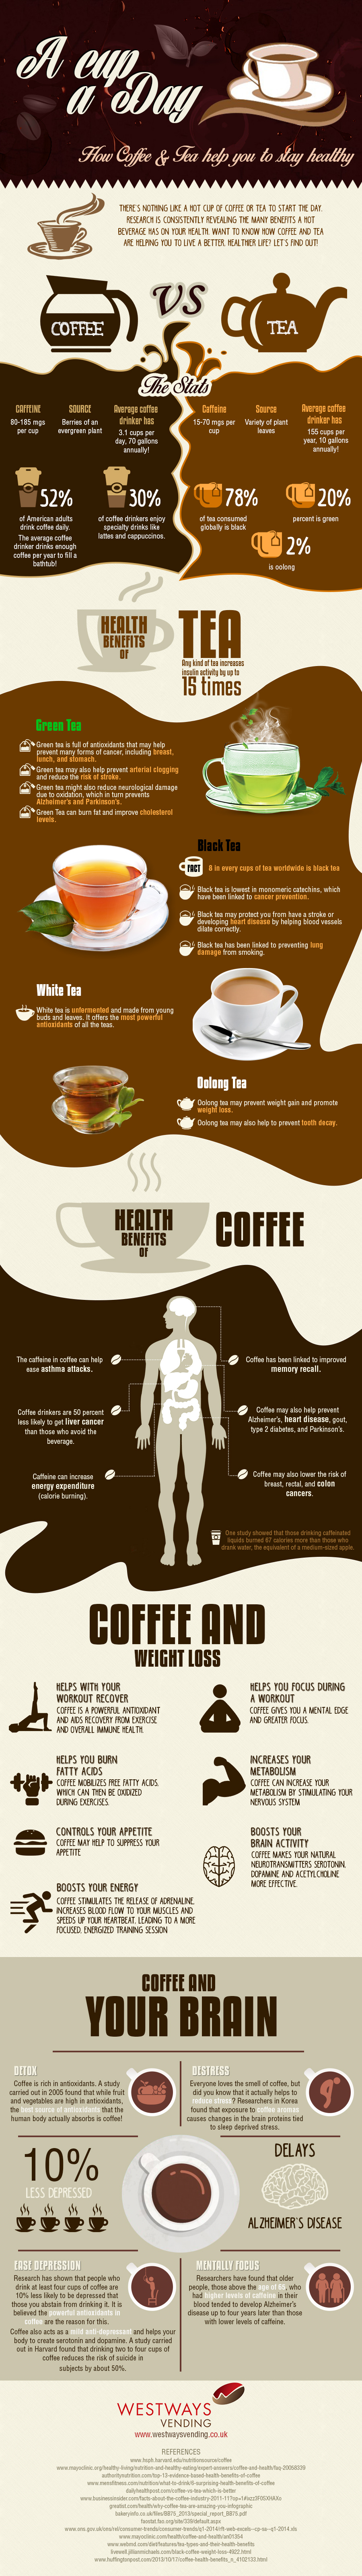 the health benefits of coffee Experts say coffee comes with a number of health perks, but only if you drink the right amount.